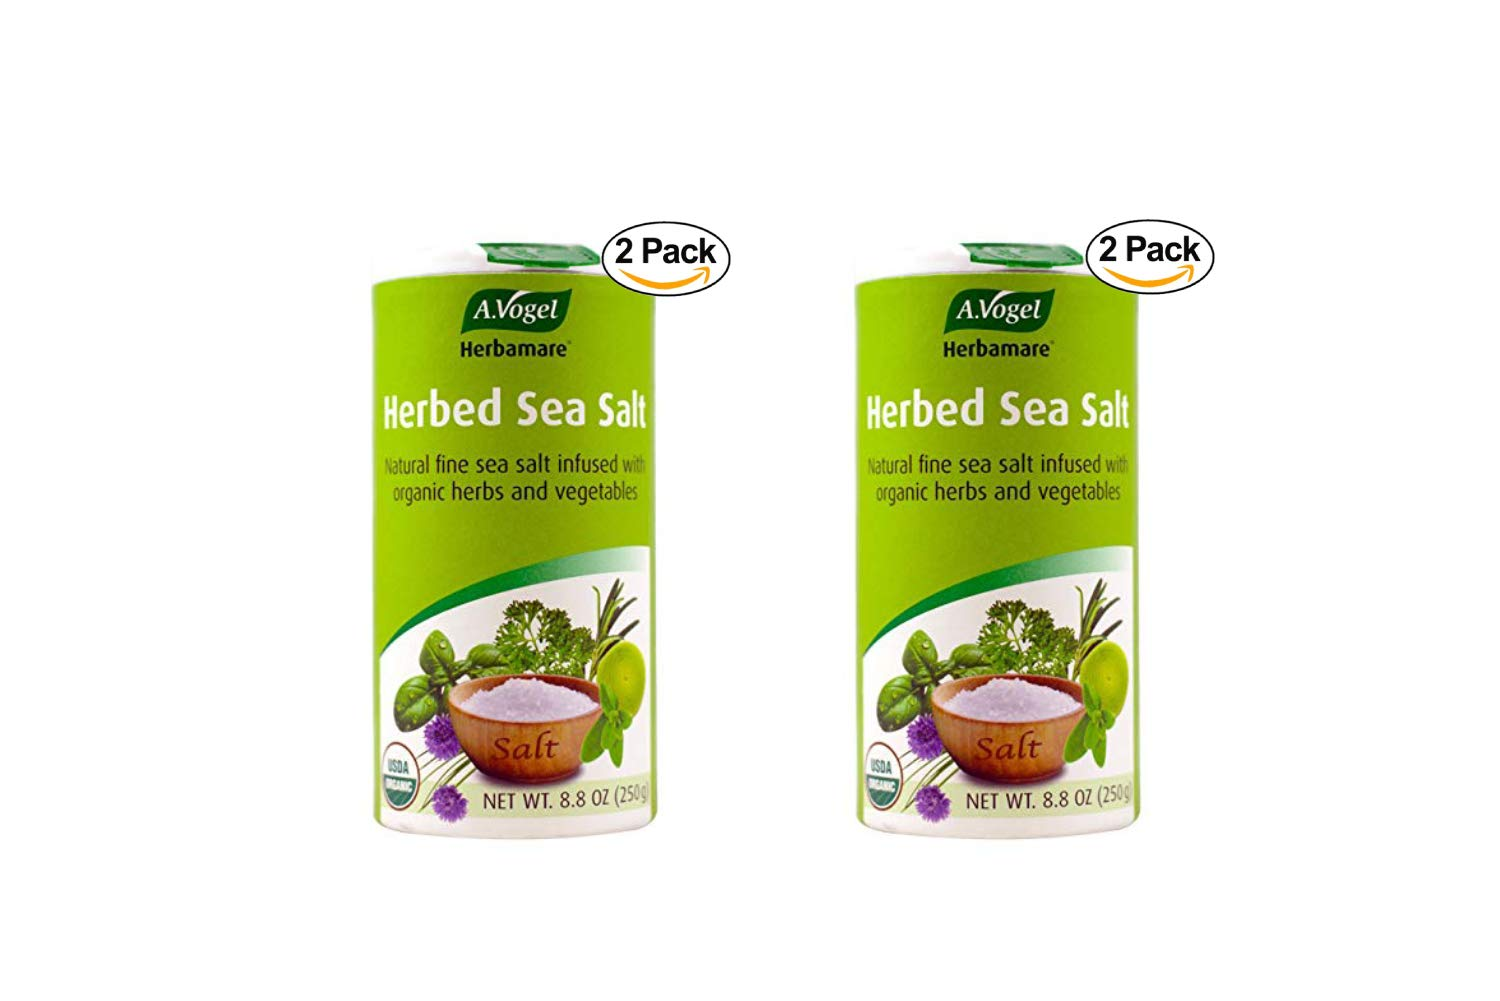 A. Vogel Herbamare Original Natural Fine Sea Salt with Organic fresh herbs and vegetables, 8.8-Ounce Containers (Pack of 2) (2 Pack)